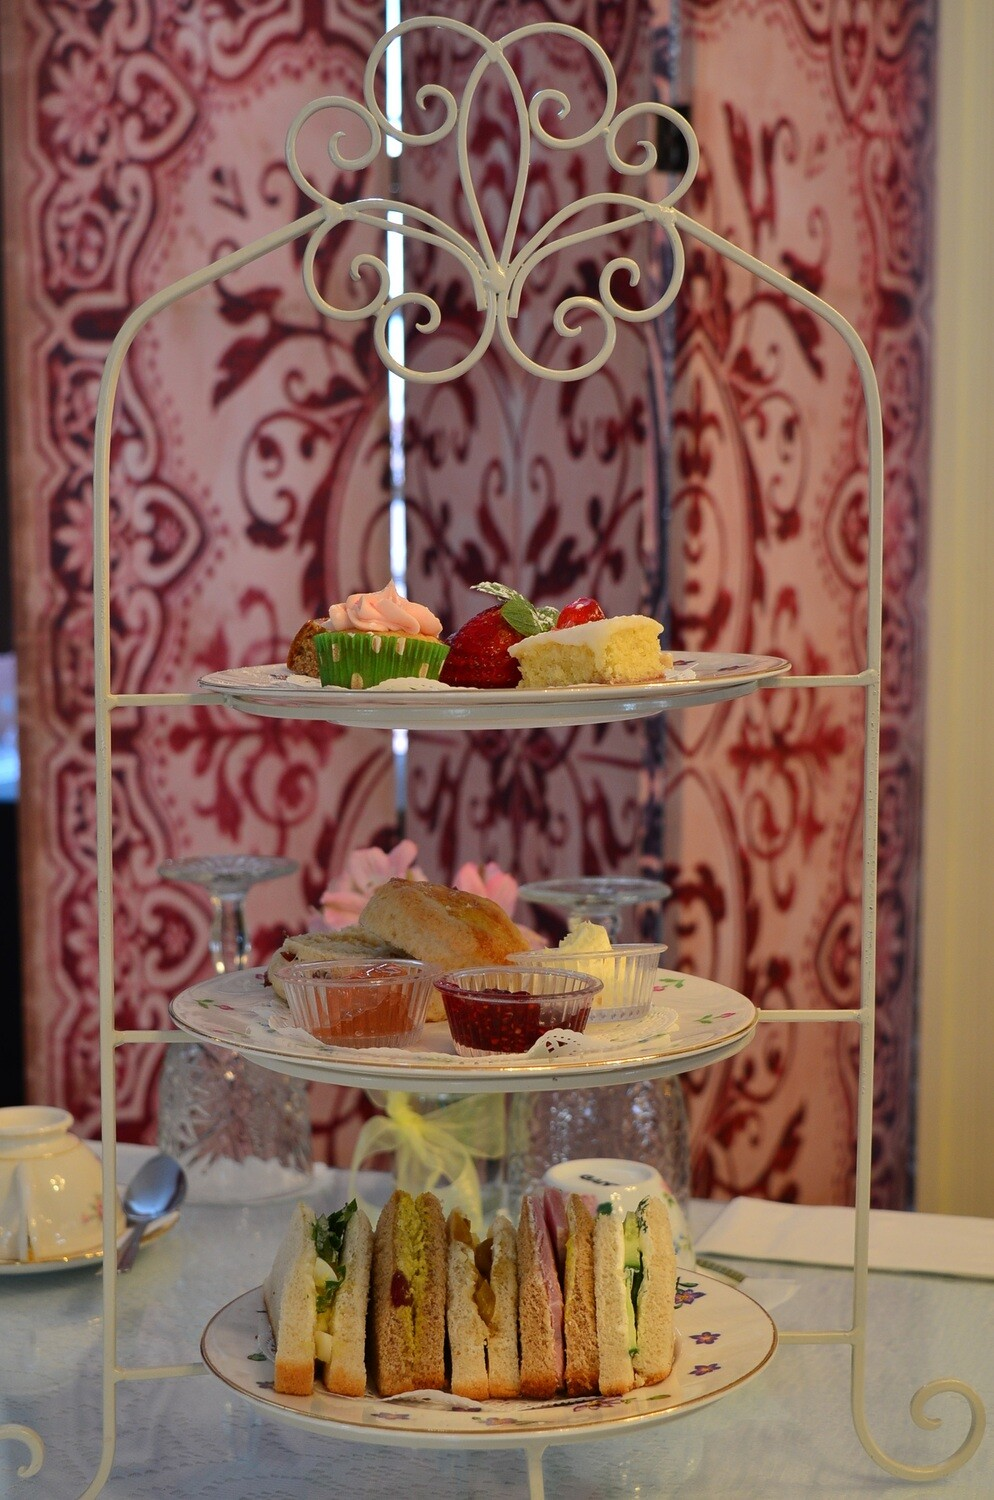 Cake stand with 3 tiers for afternoon tea